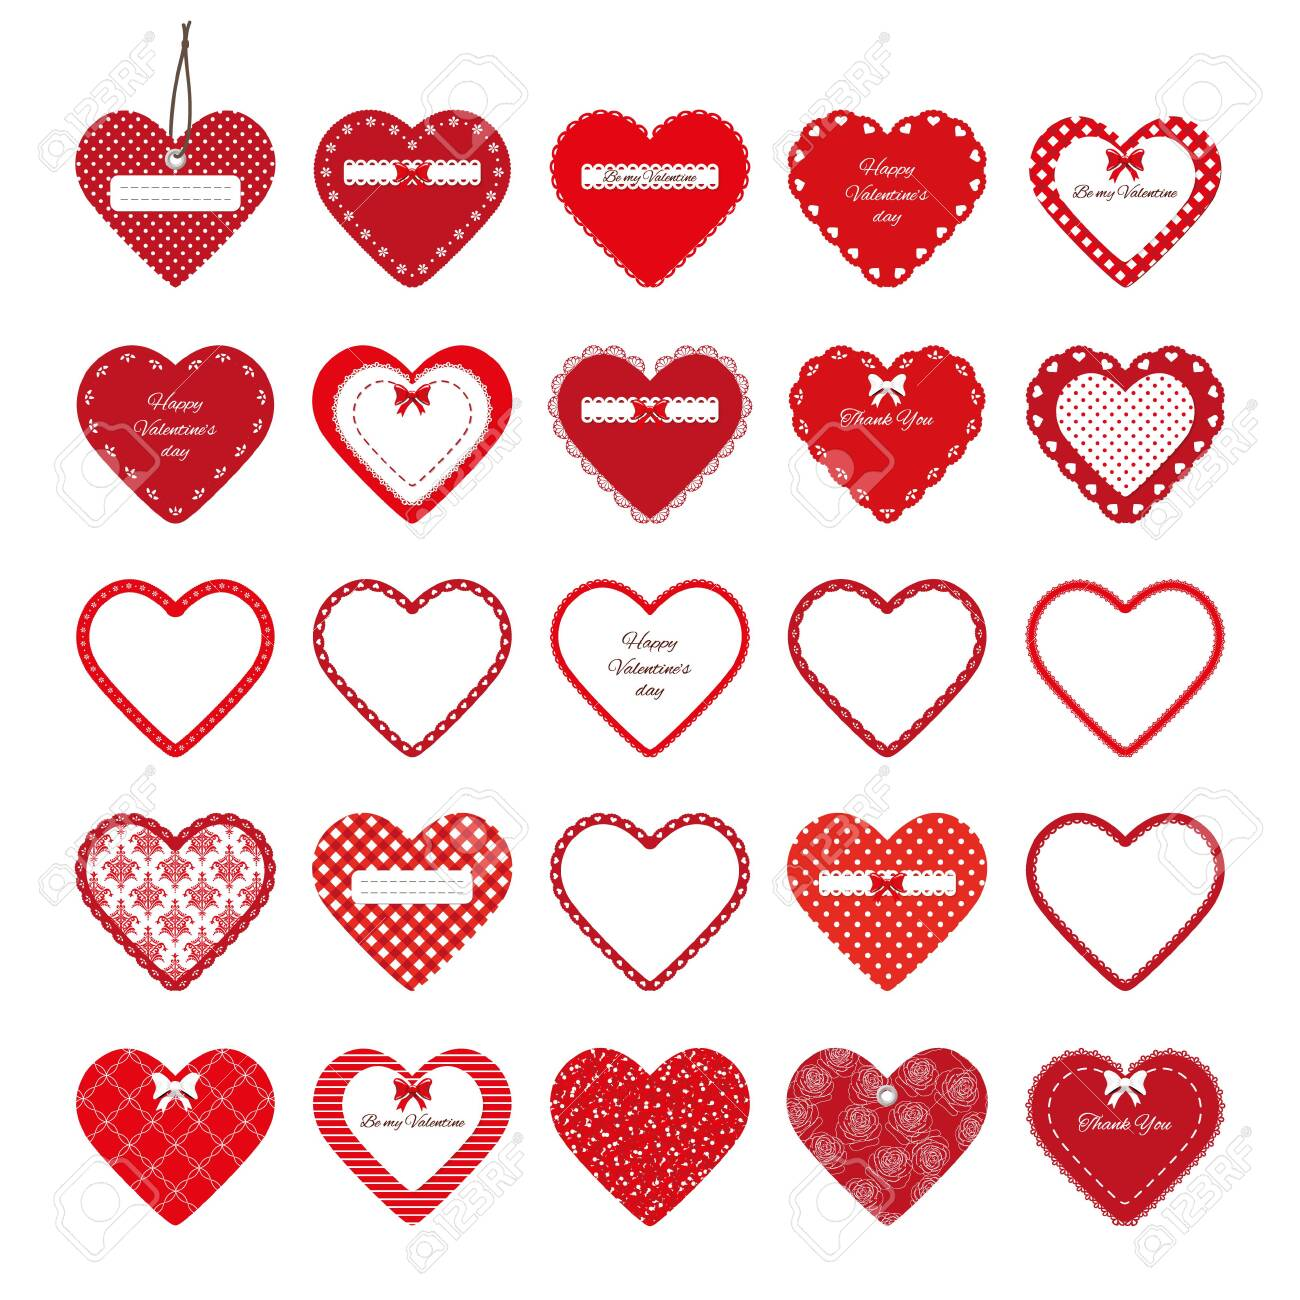 Valentines day stickers. Decorative cut out red hearts set isolated on white. - 117367779